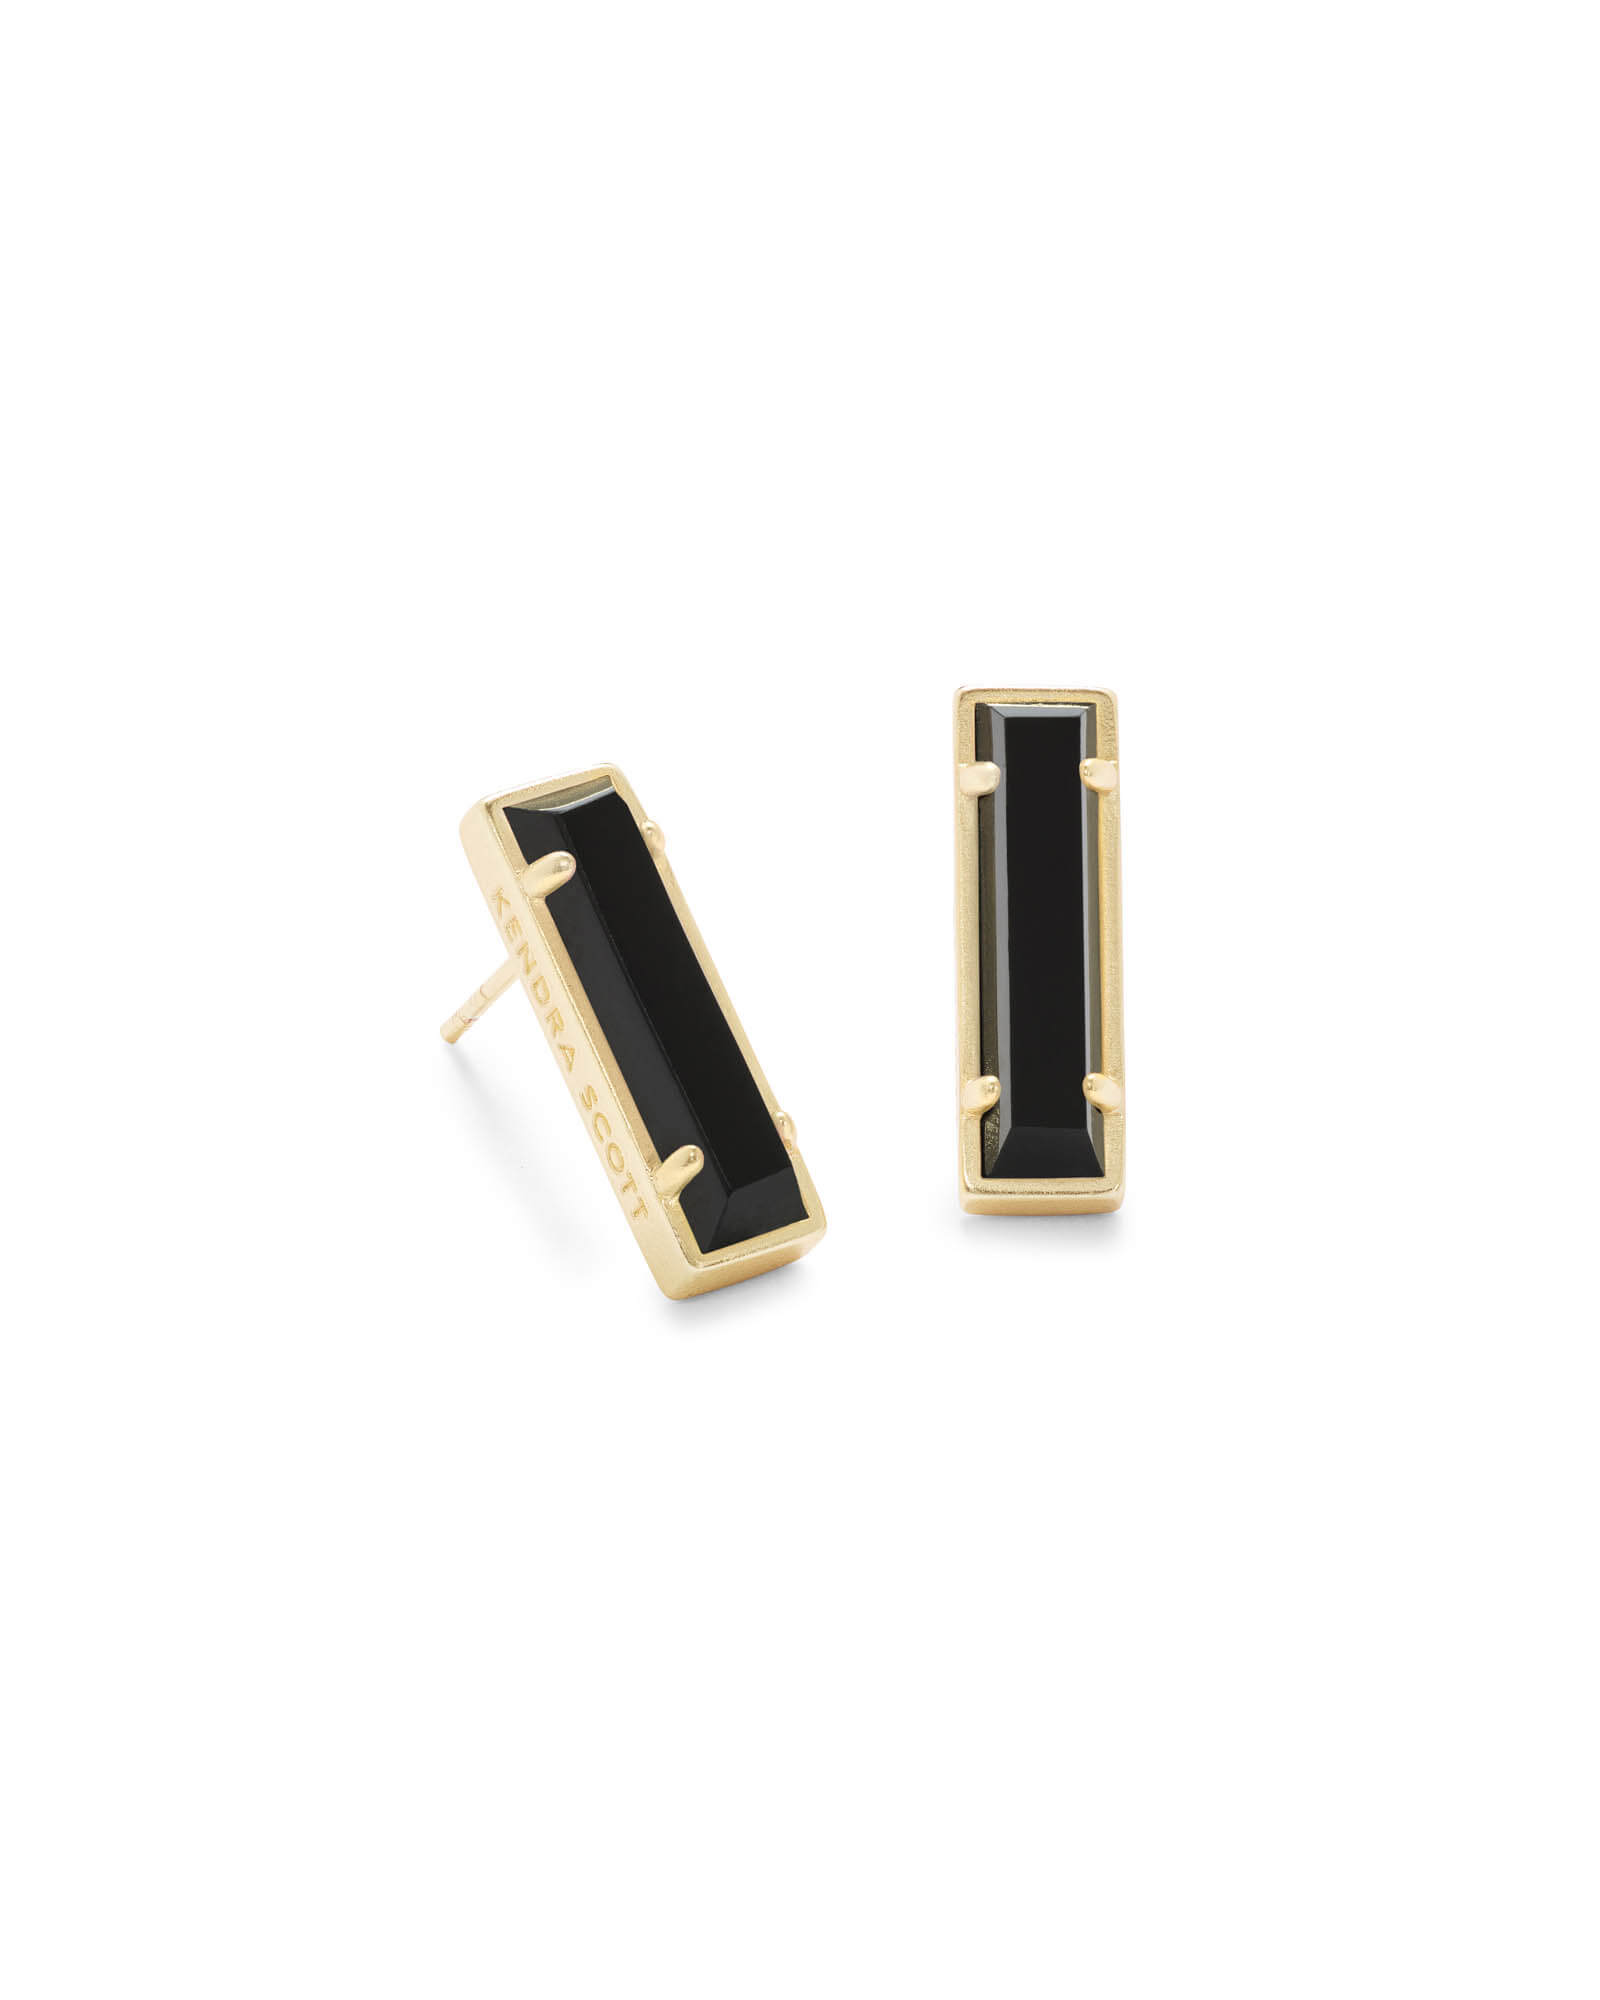 Lady Gold Stud Earrings in Black Opaque Glass